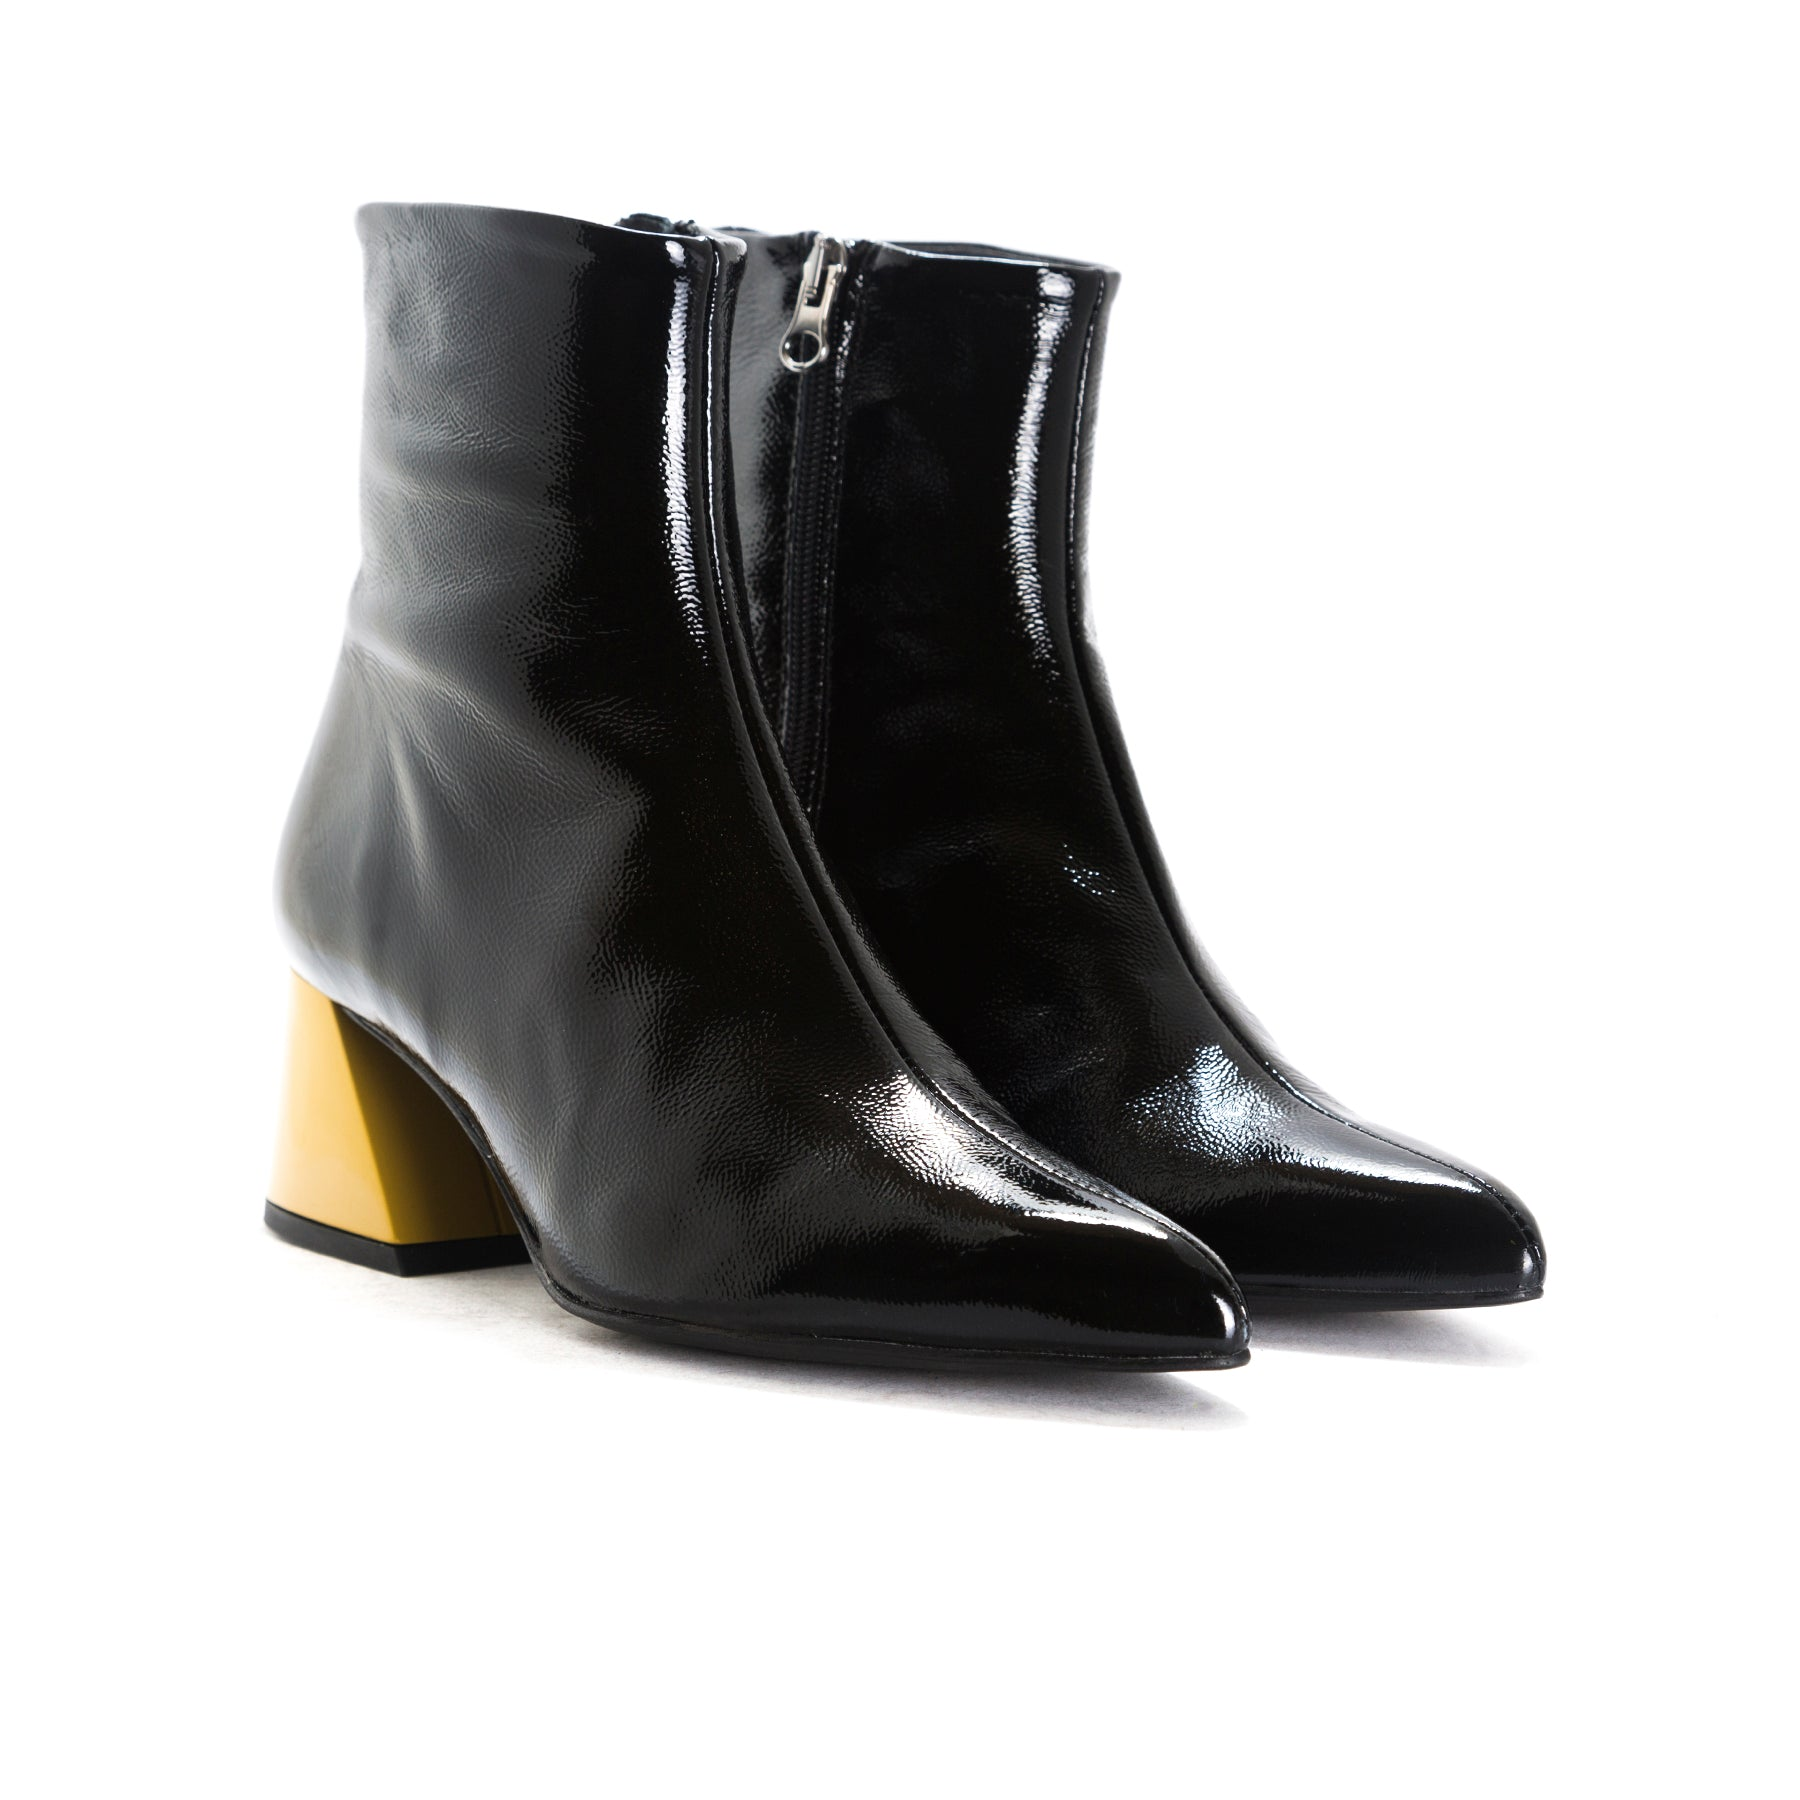 Salonika Black Naplack Booties